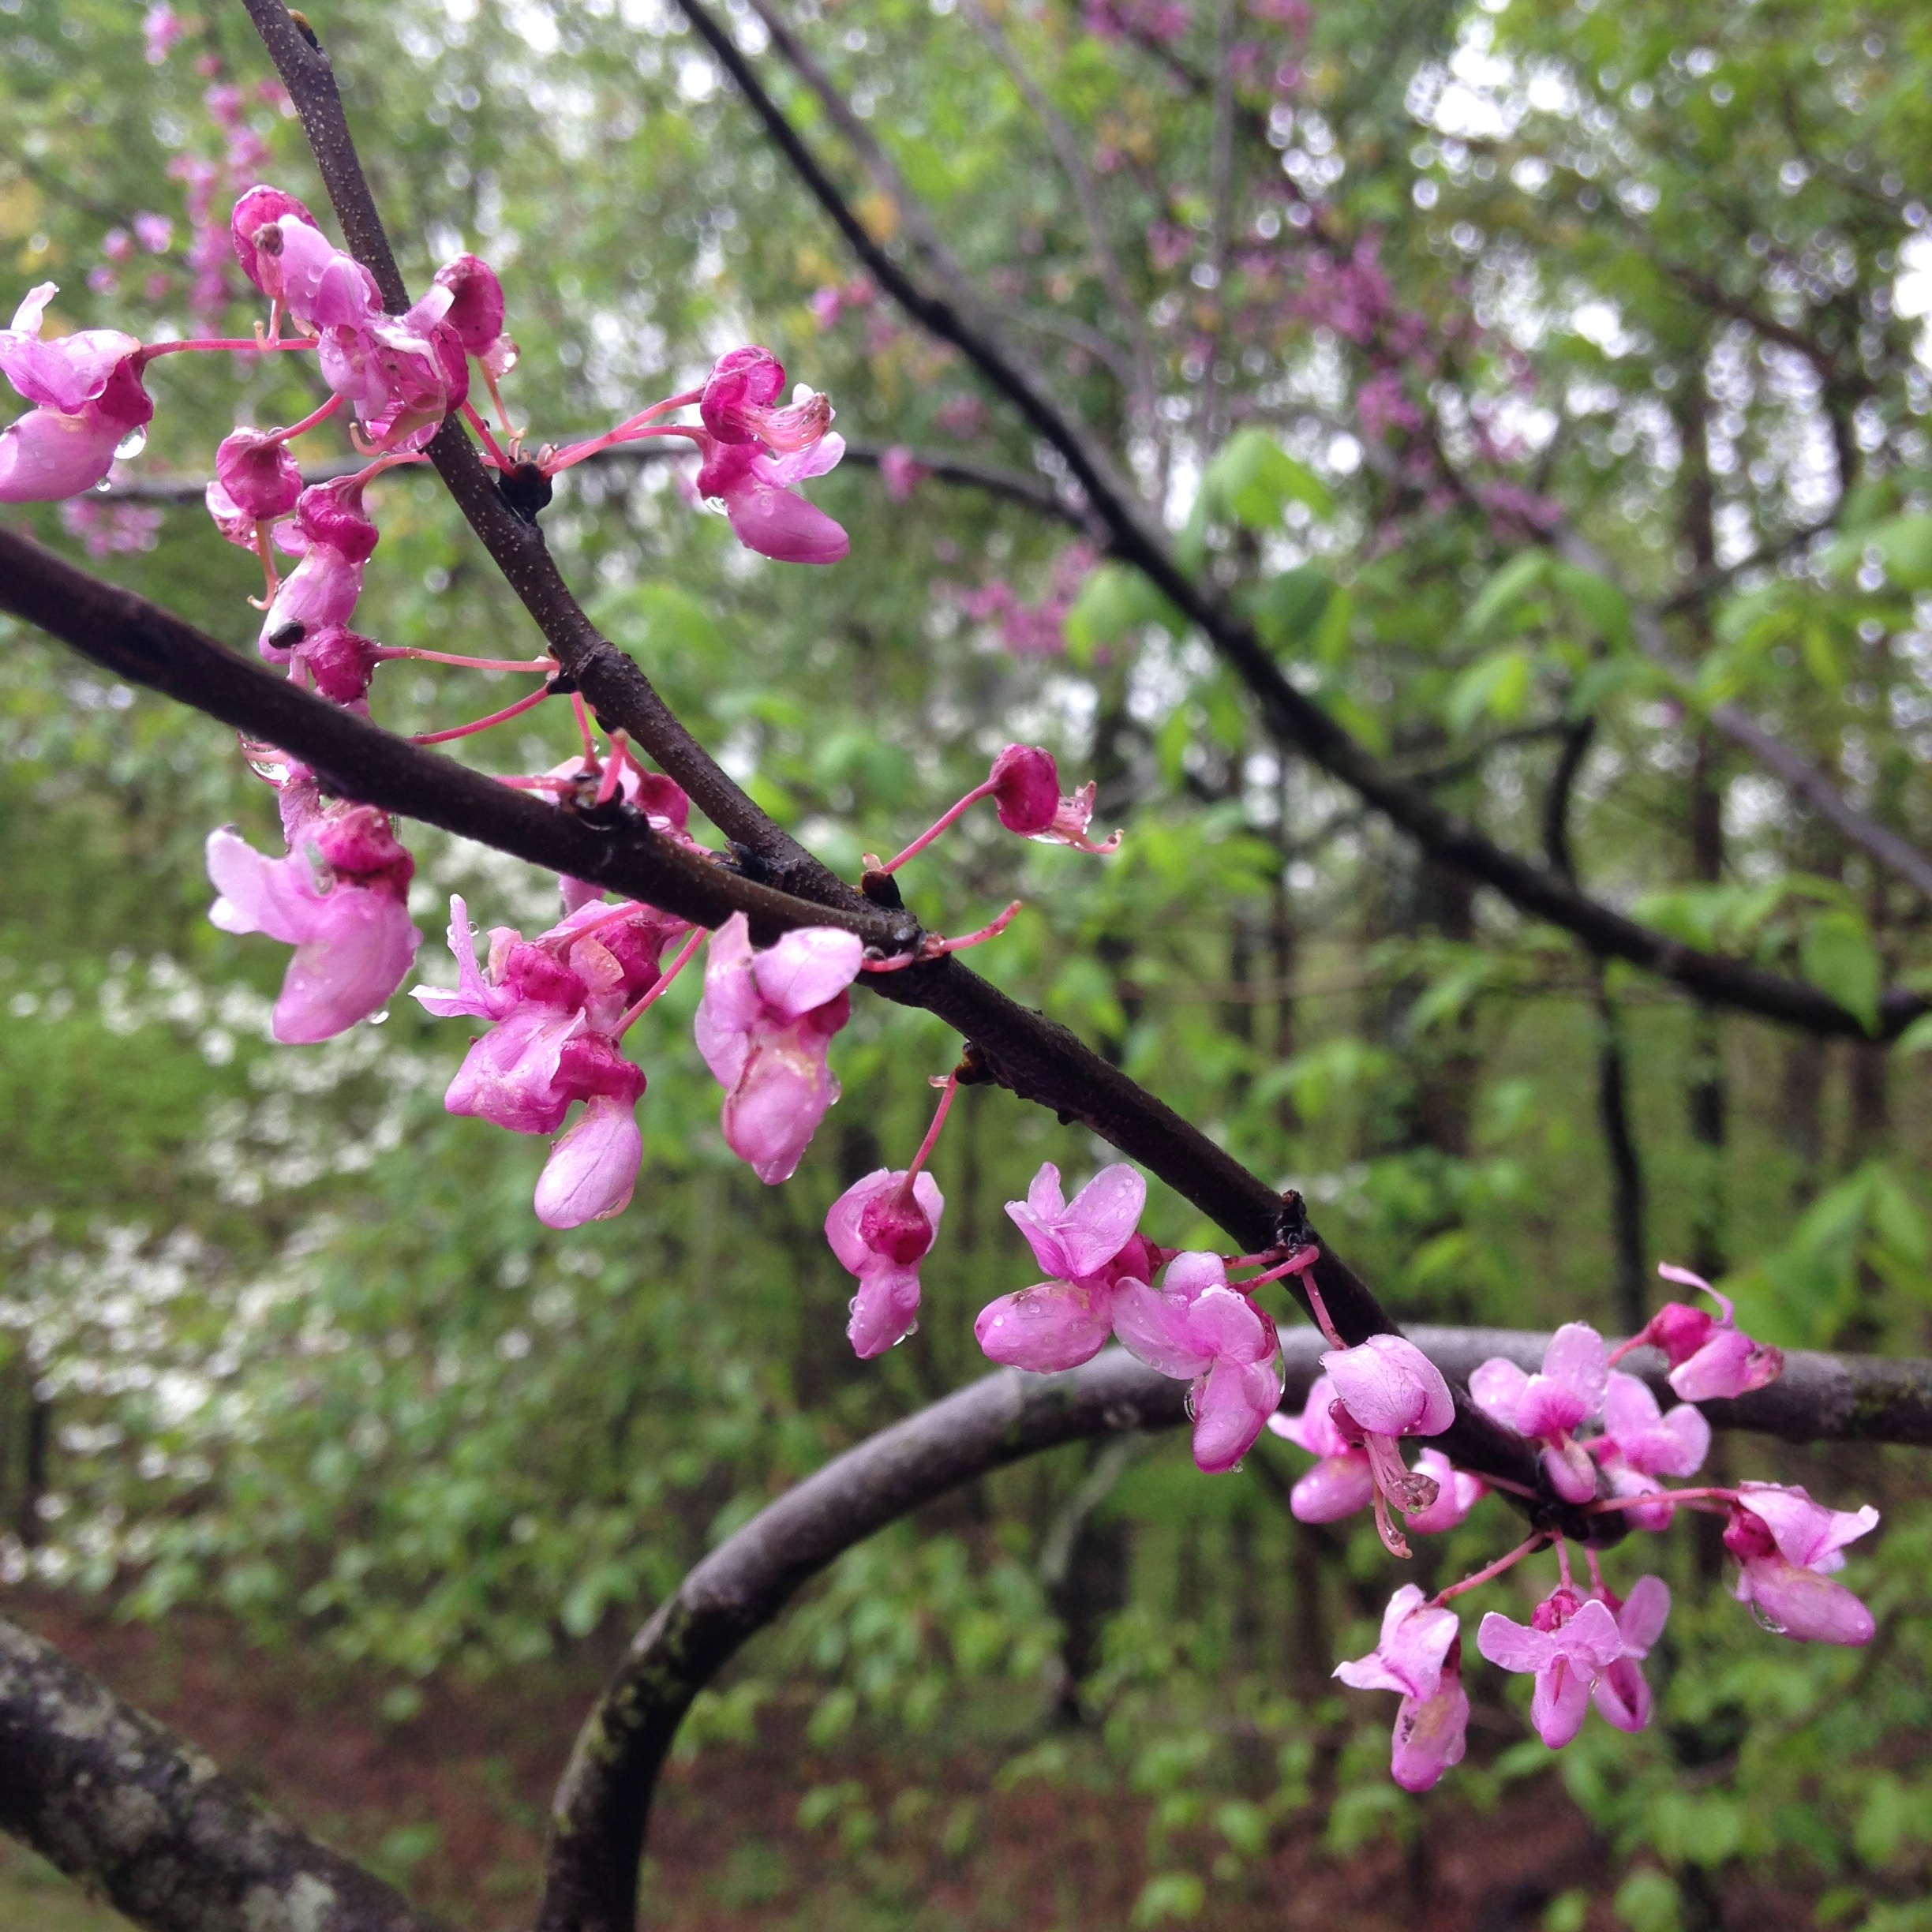 The more common rosy pink (and edible!) blooms of  Cercis canadensis  or redbud tree.